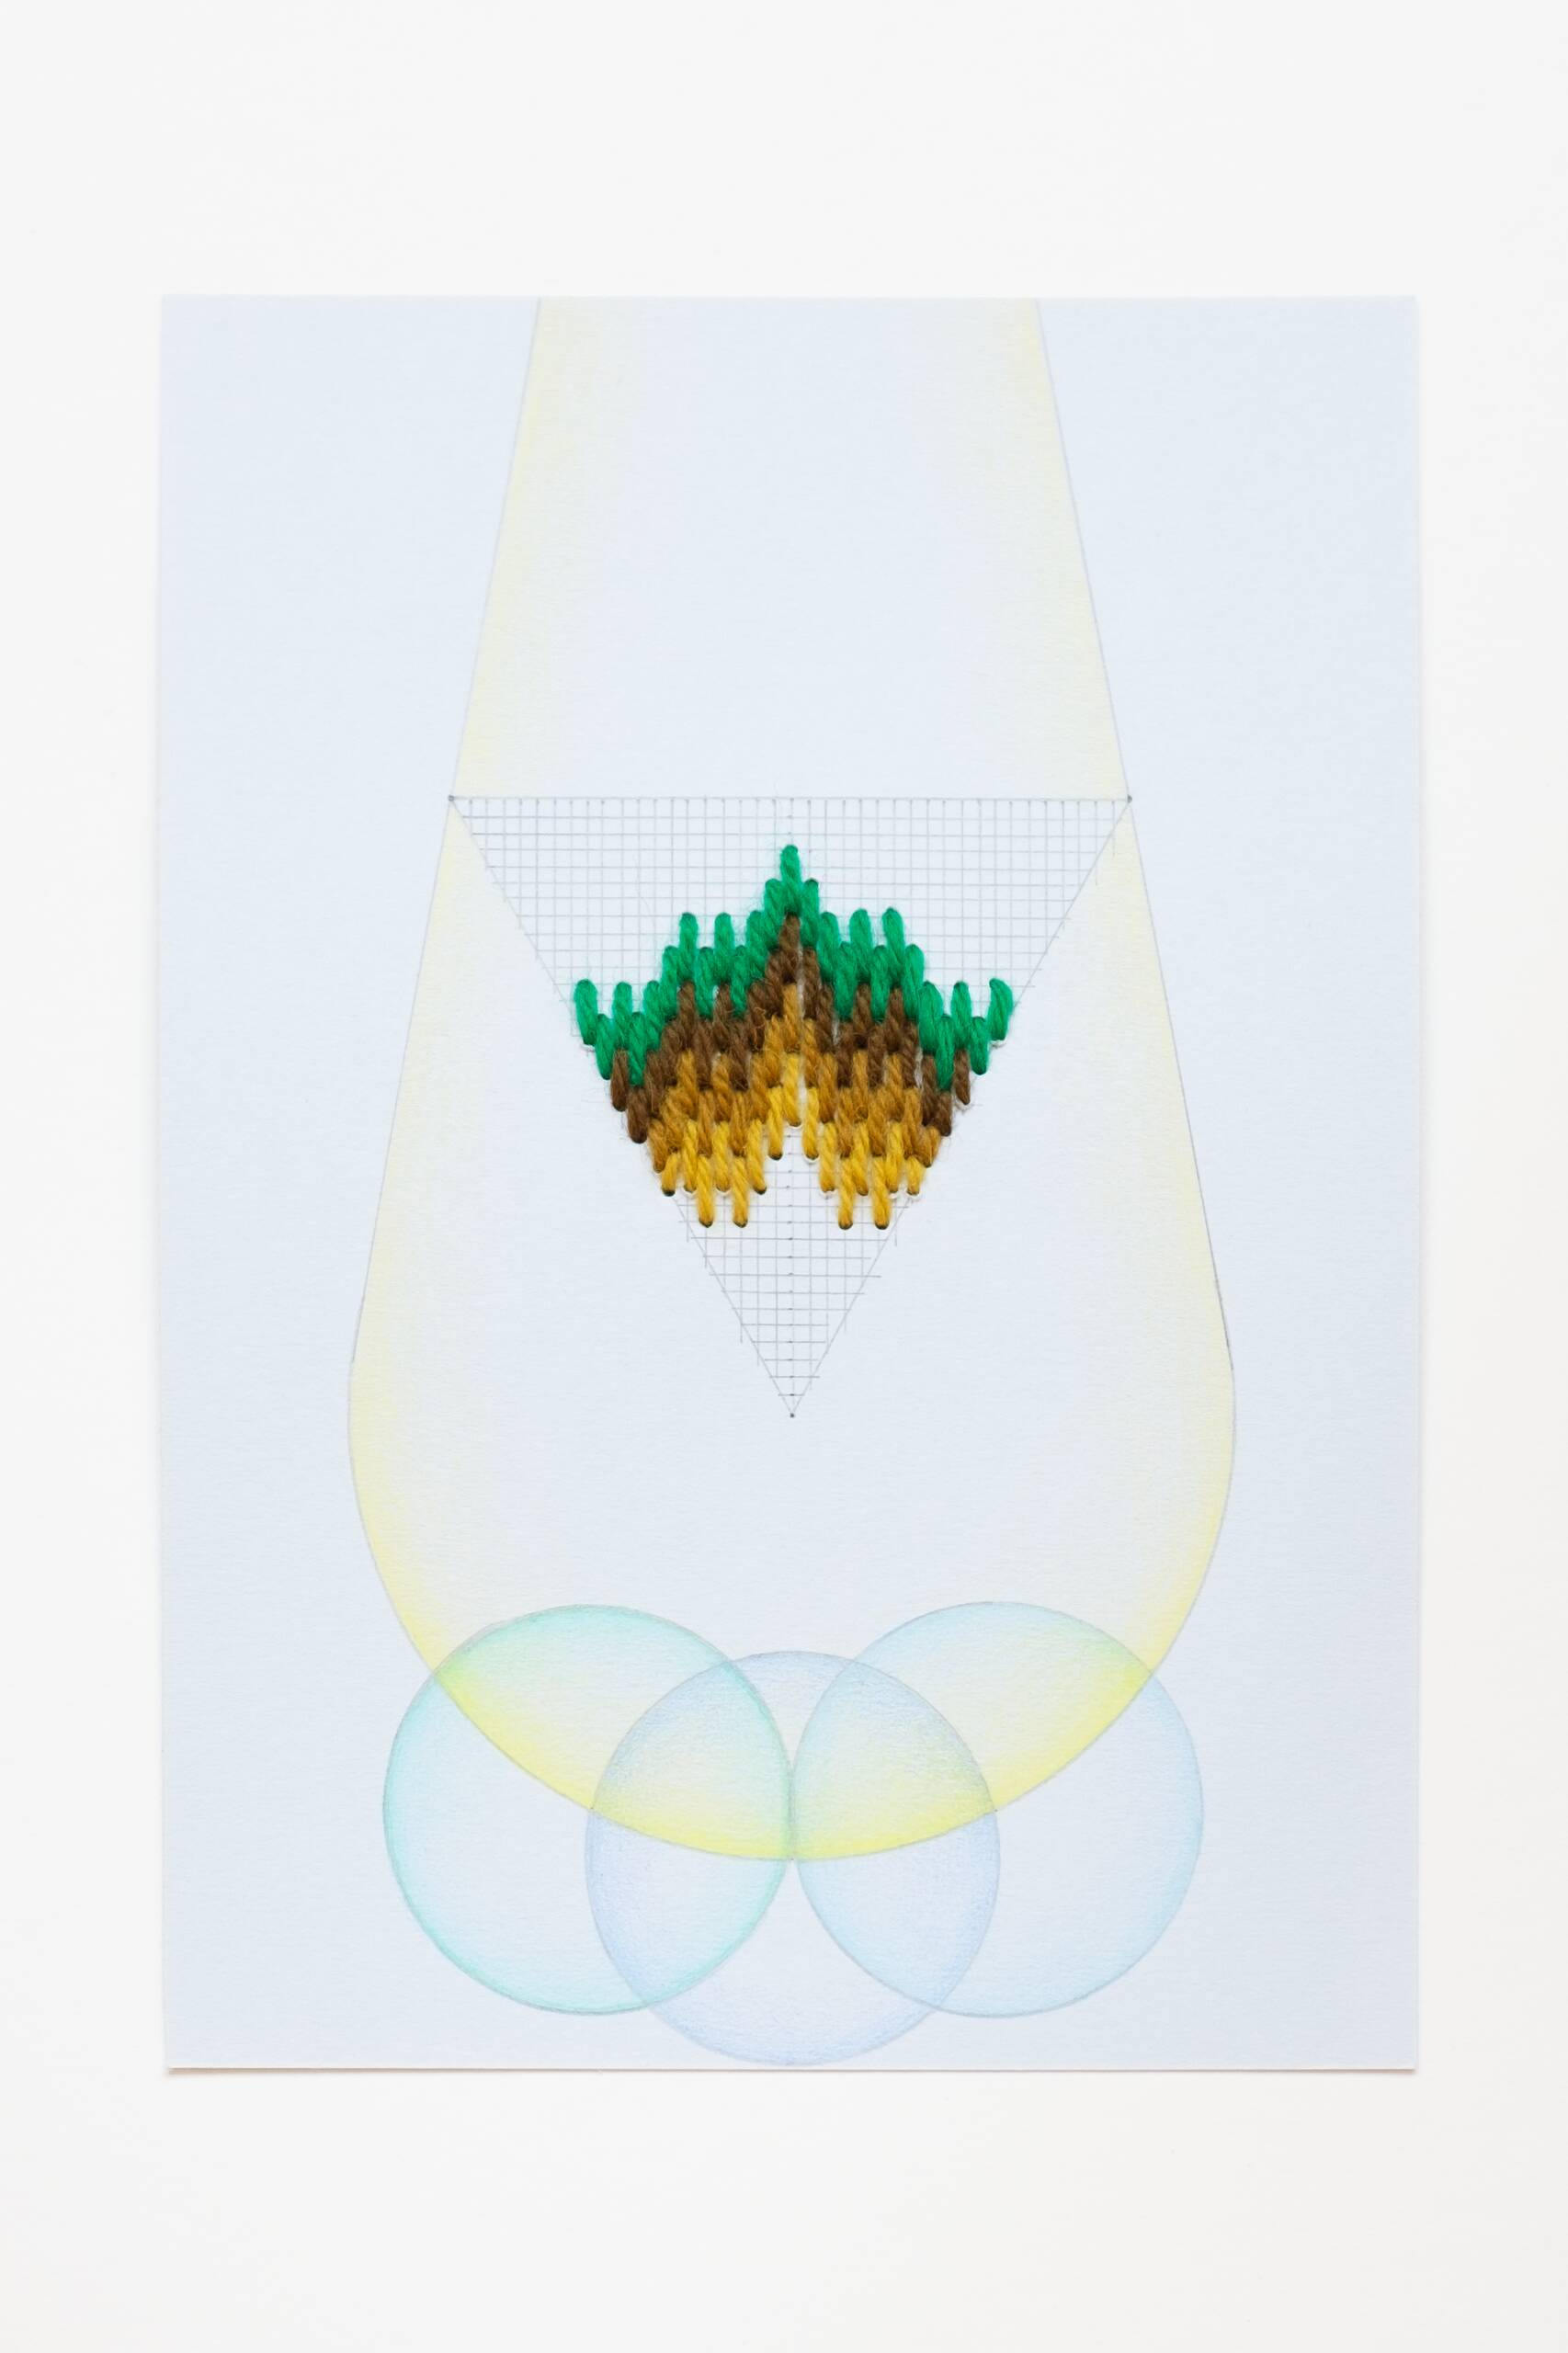 Bargello triangle [green-yellow on blue], Hand-embroidered wool thread, pencil and colored pencil on paper, 2020